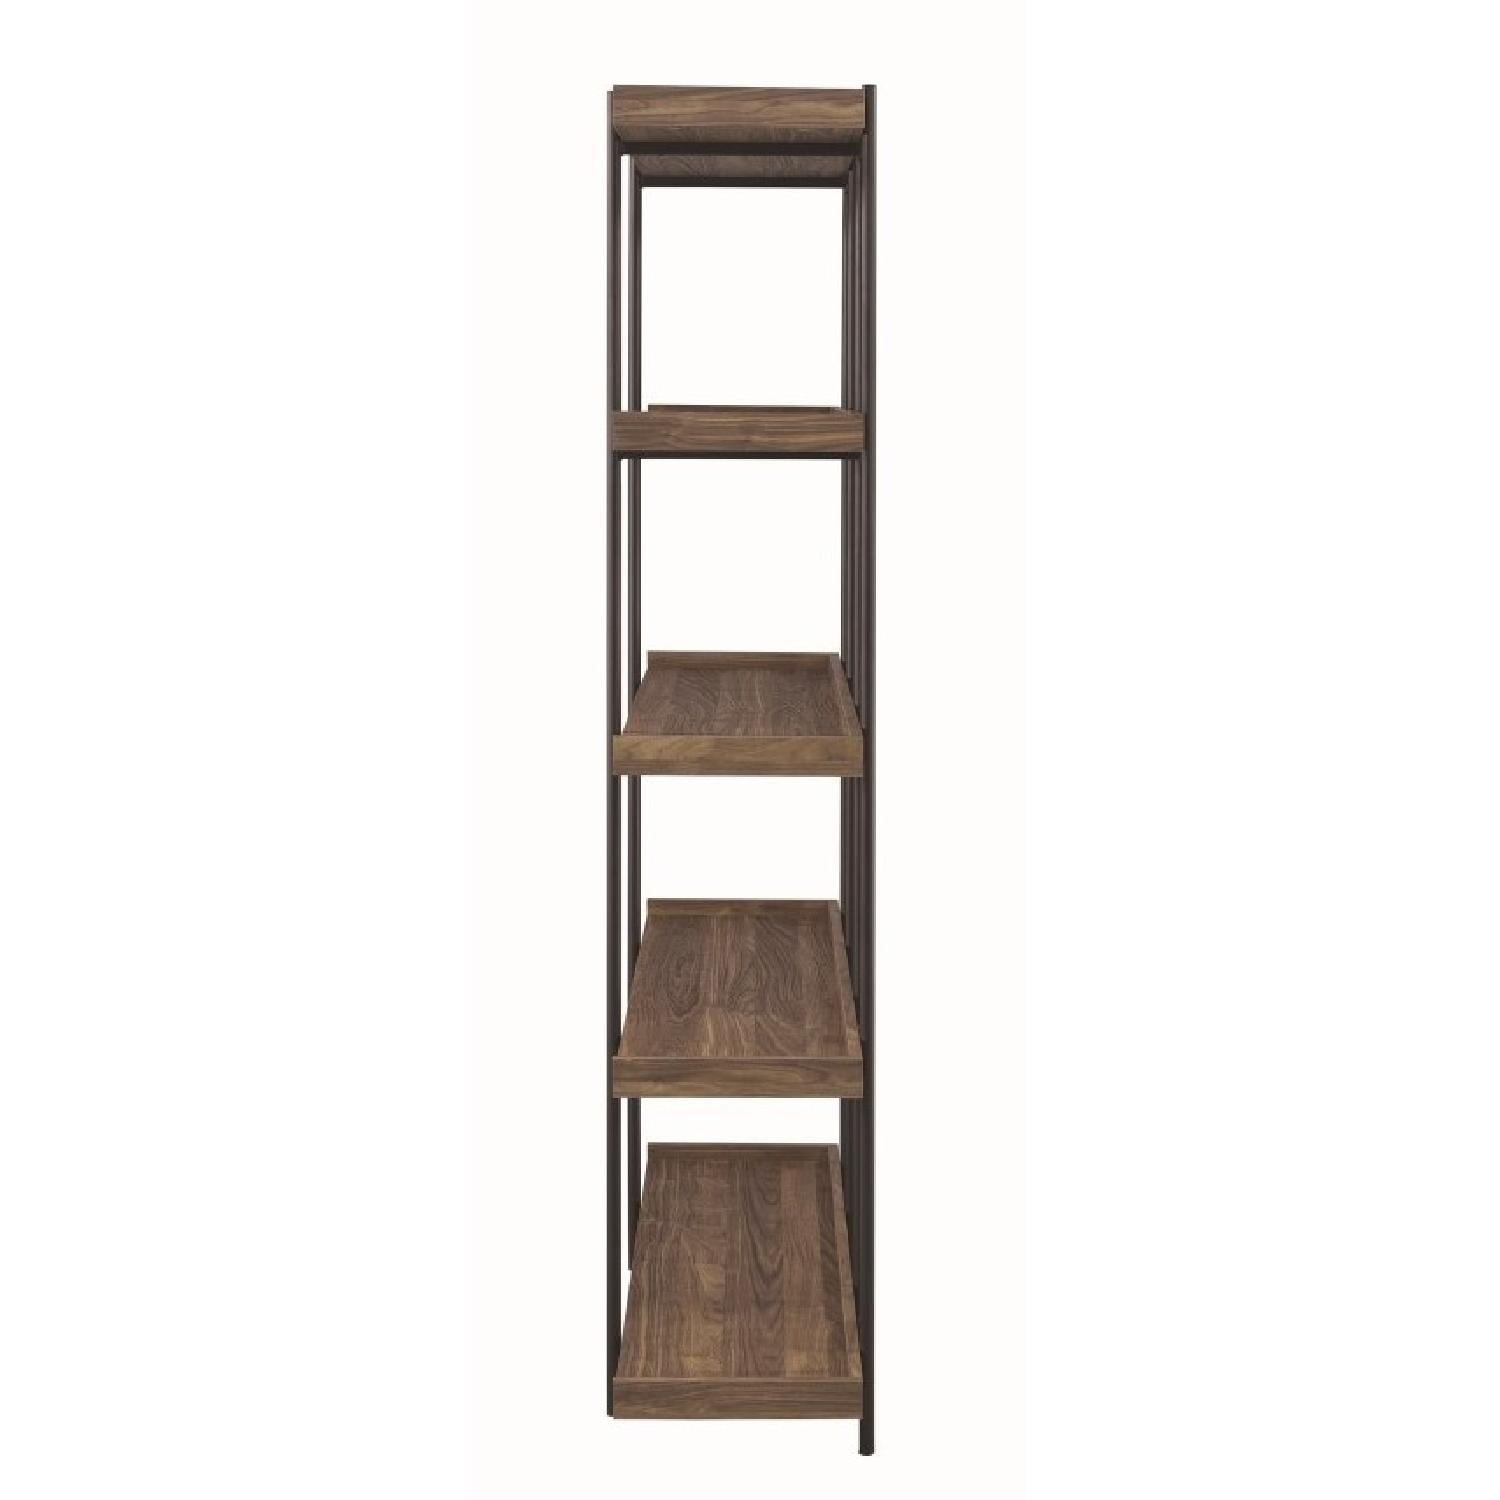 Industrial Style 5-Shelves Bookcase in Aged Walnut Finish - image-1